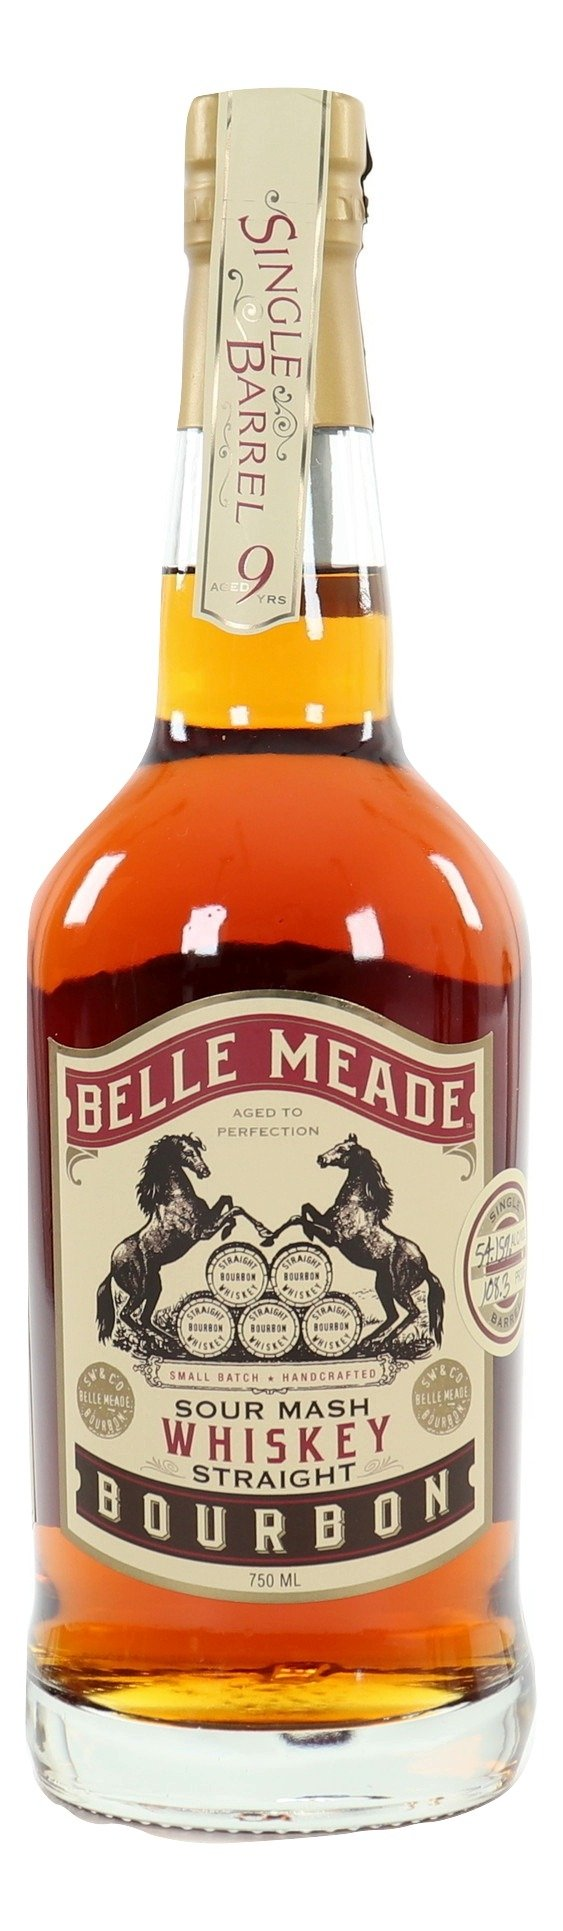 Belle Meade Single Barrel Bourbon 9 Year Old